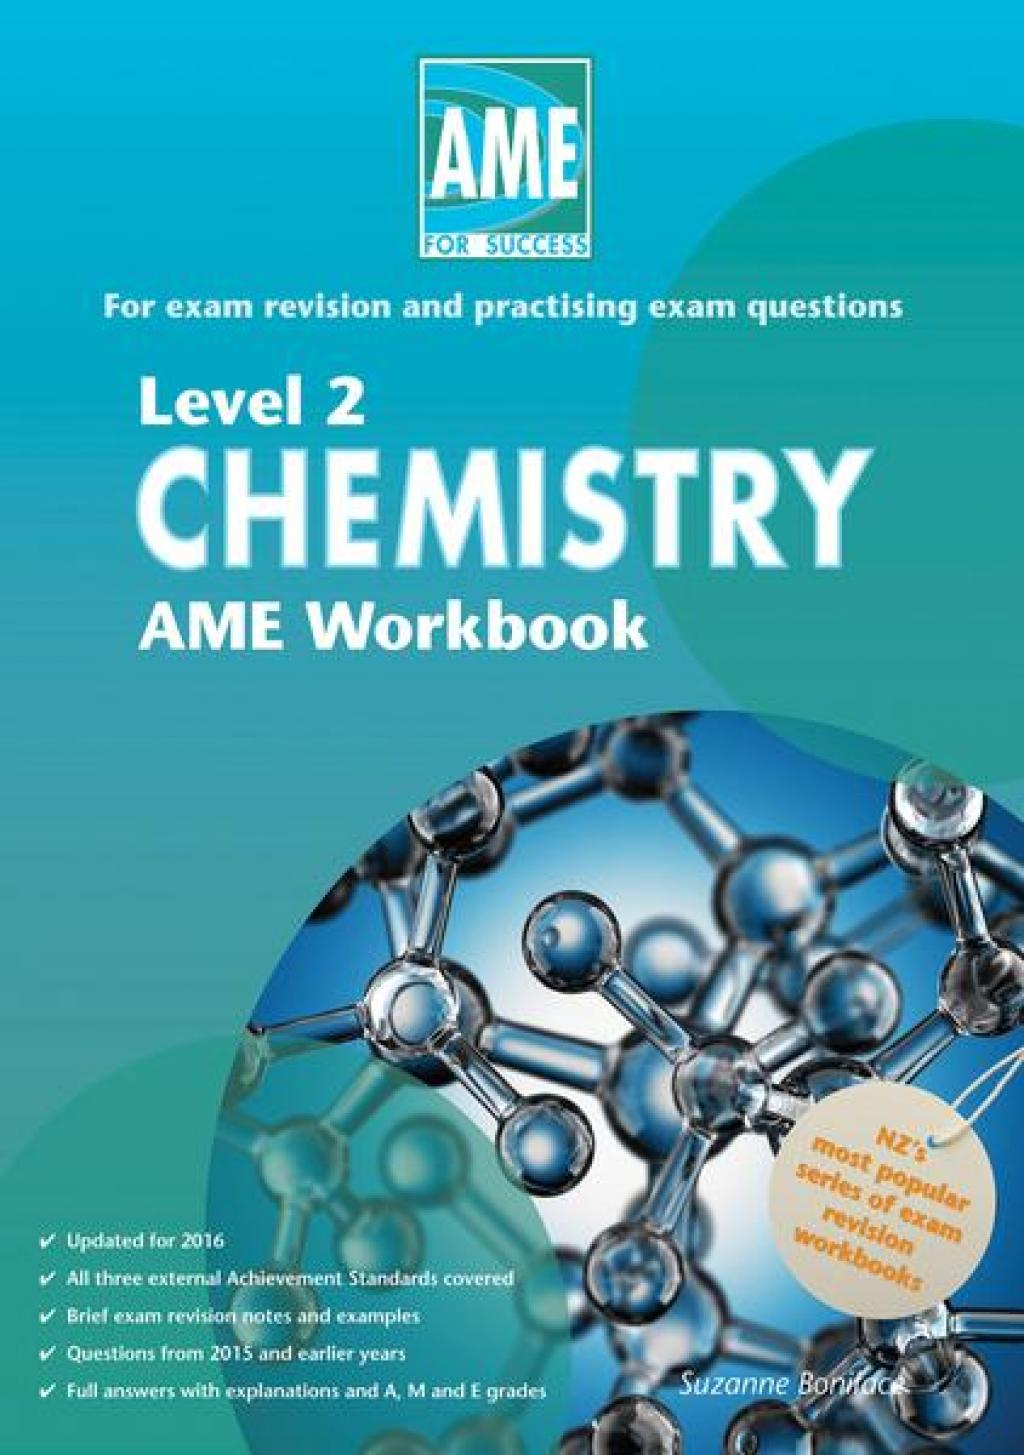 Level 2 Chemistry AME Workbook | Read Pacific | Reading Books ...